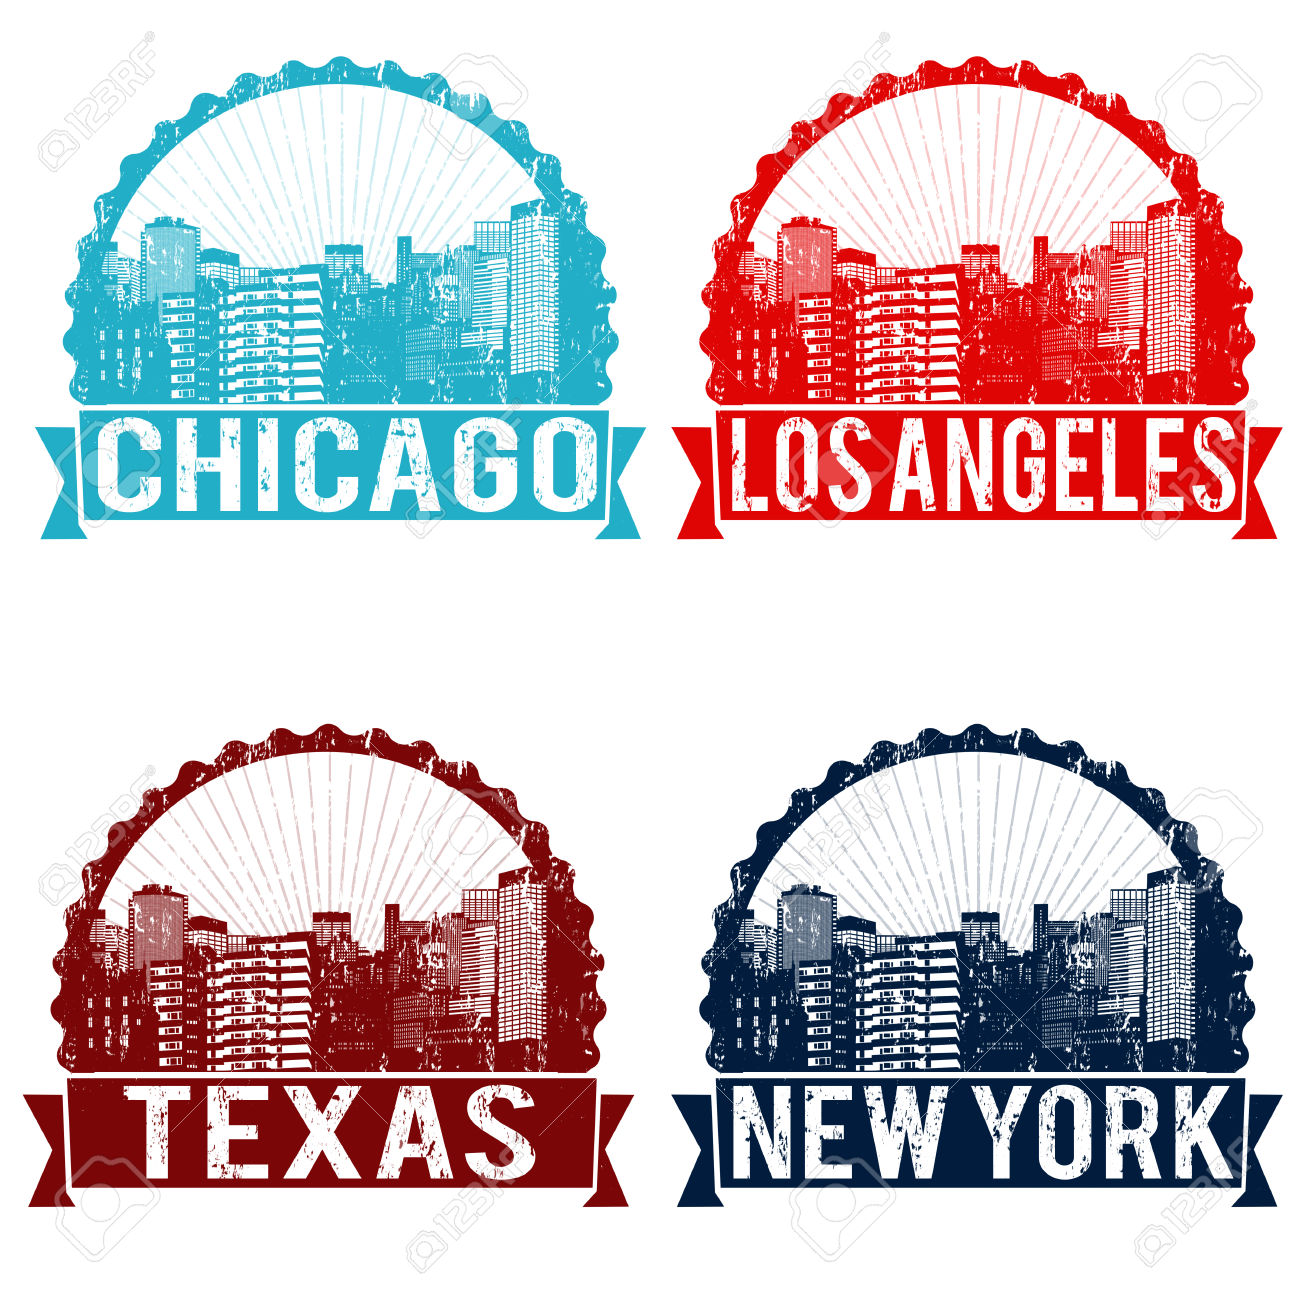 Los angeles live clipart.